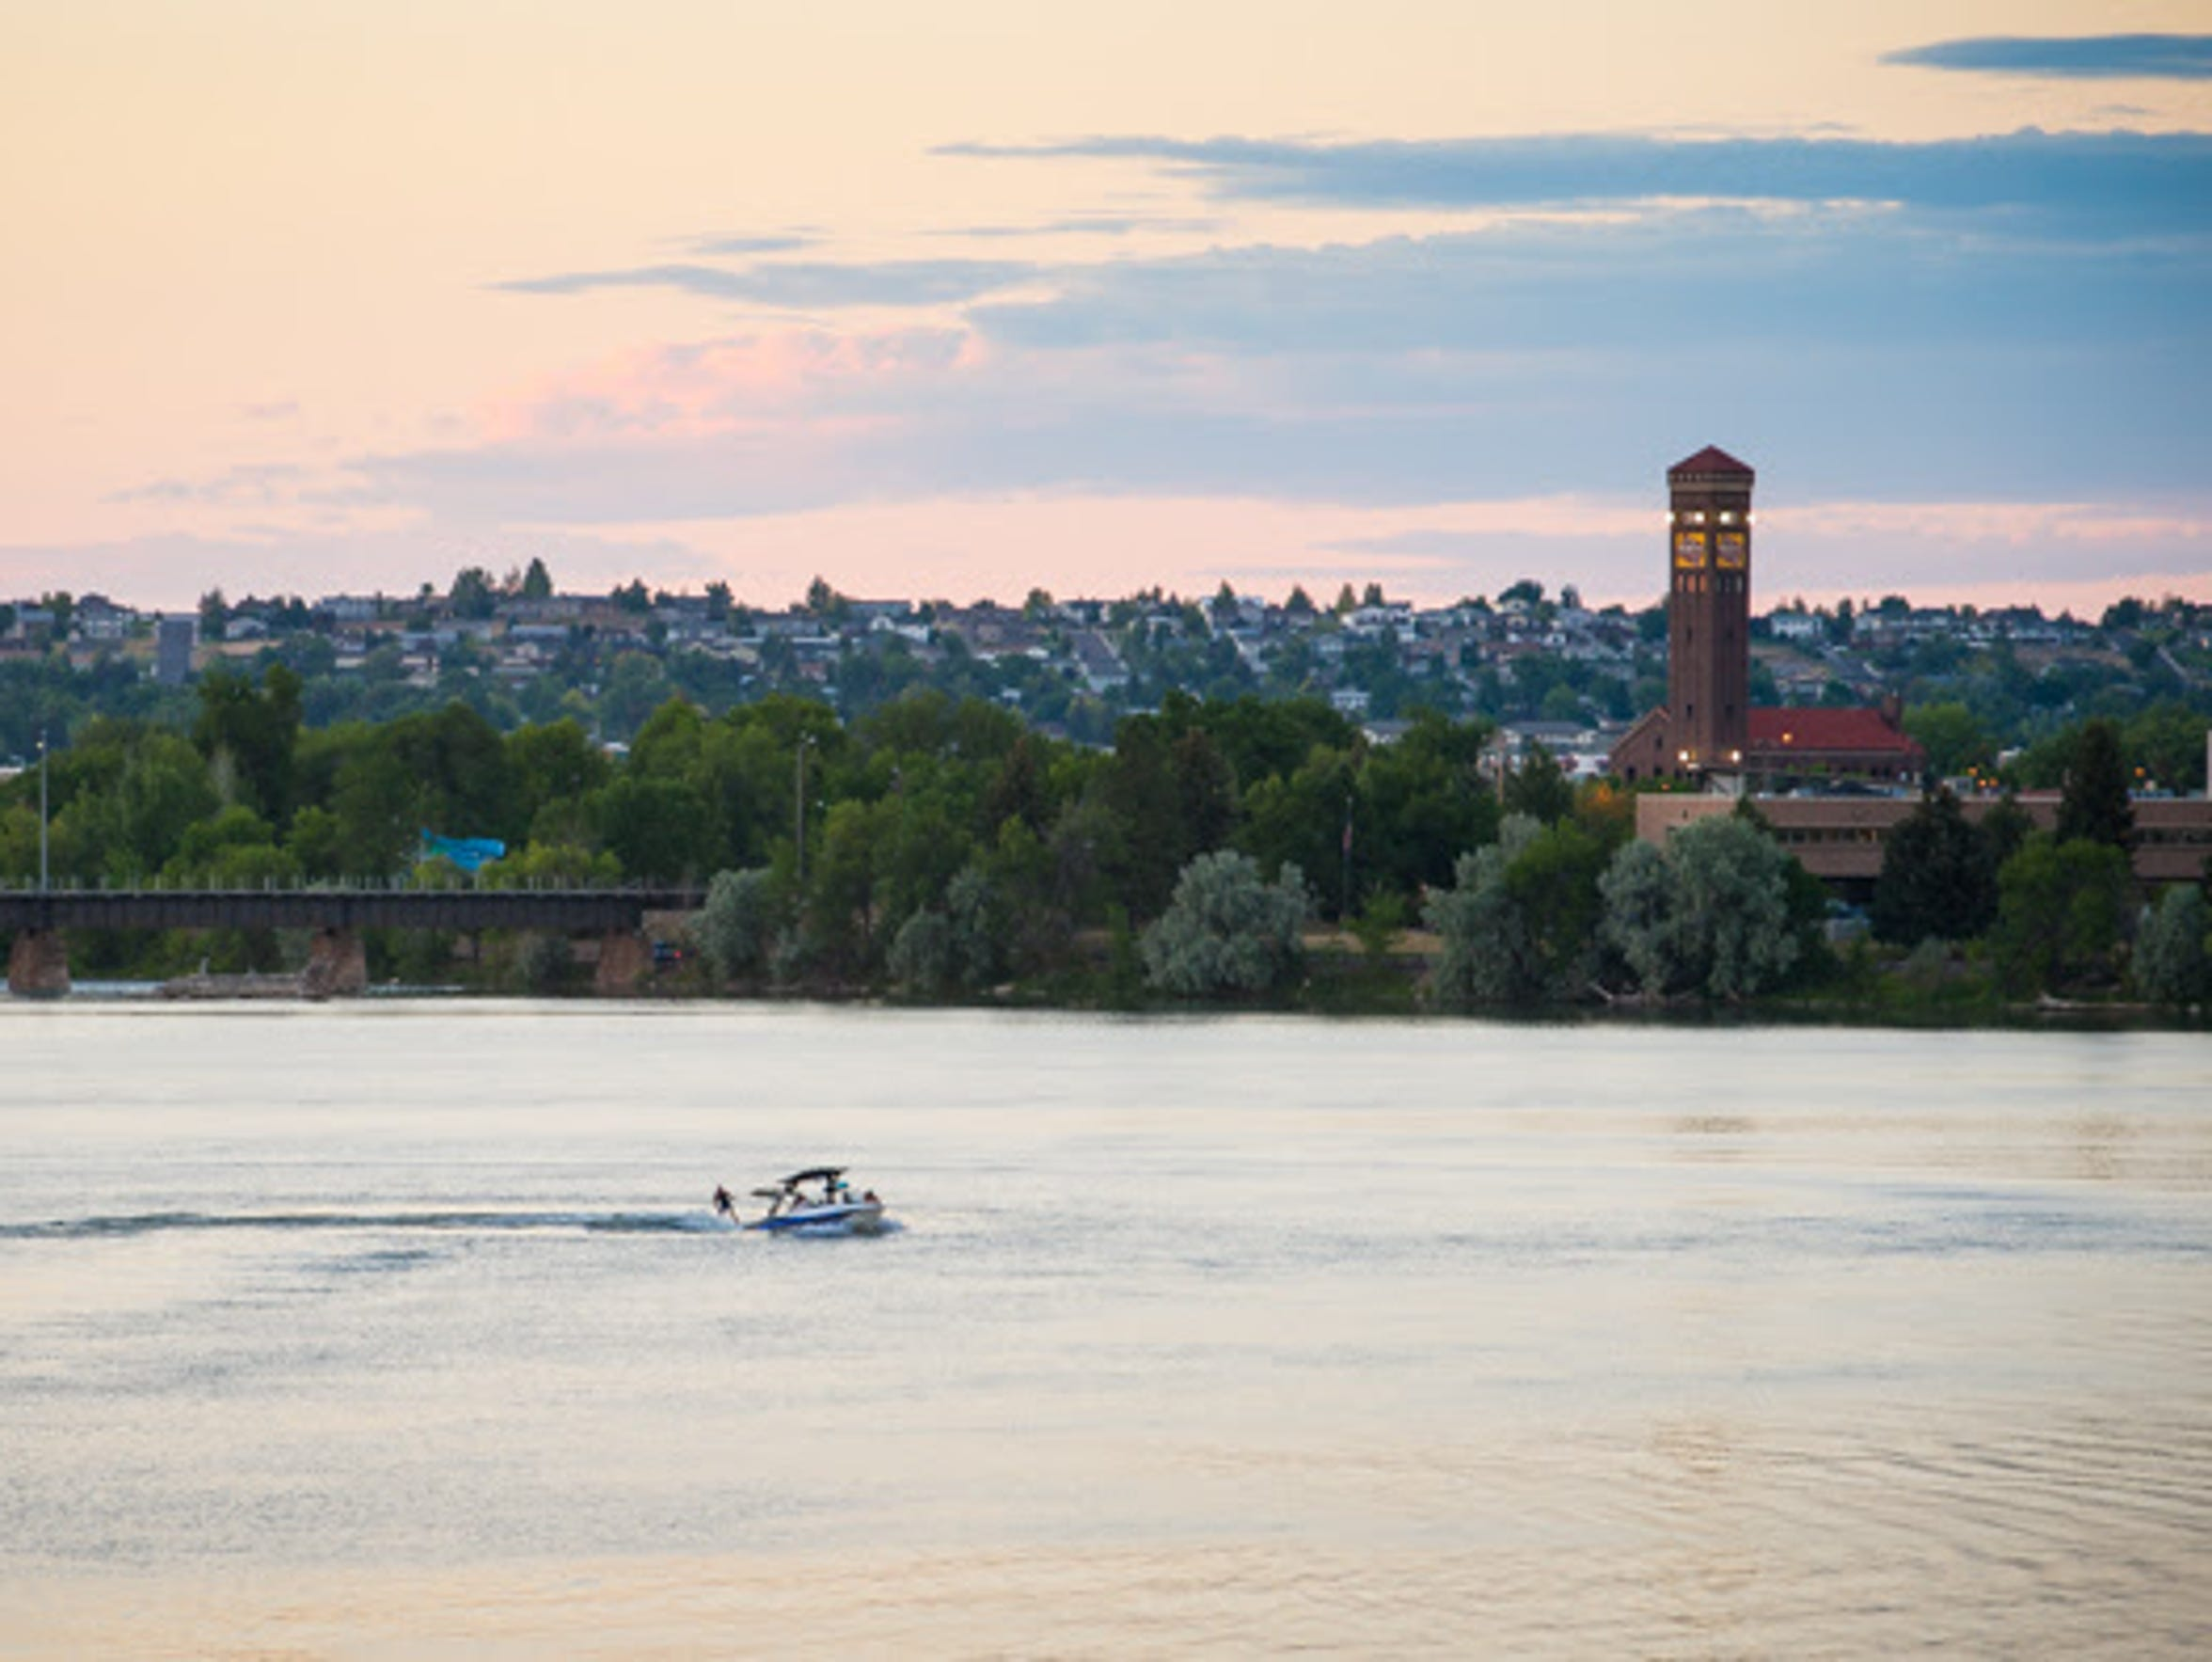 Boating travel across the Missouri River in Great Falls.